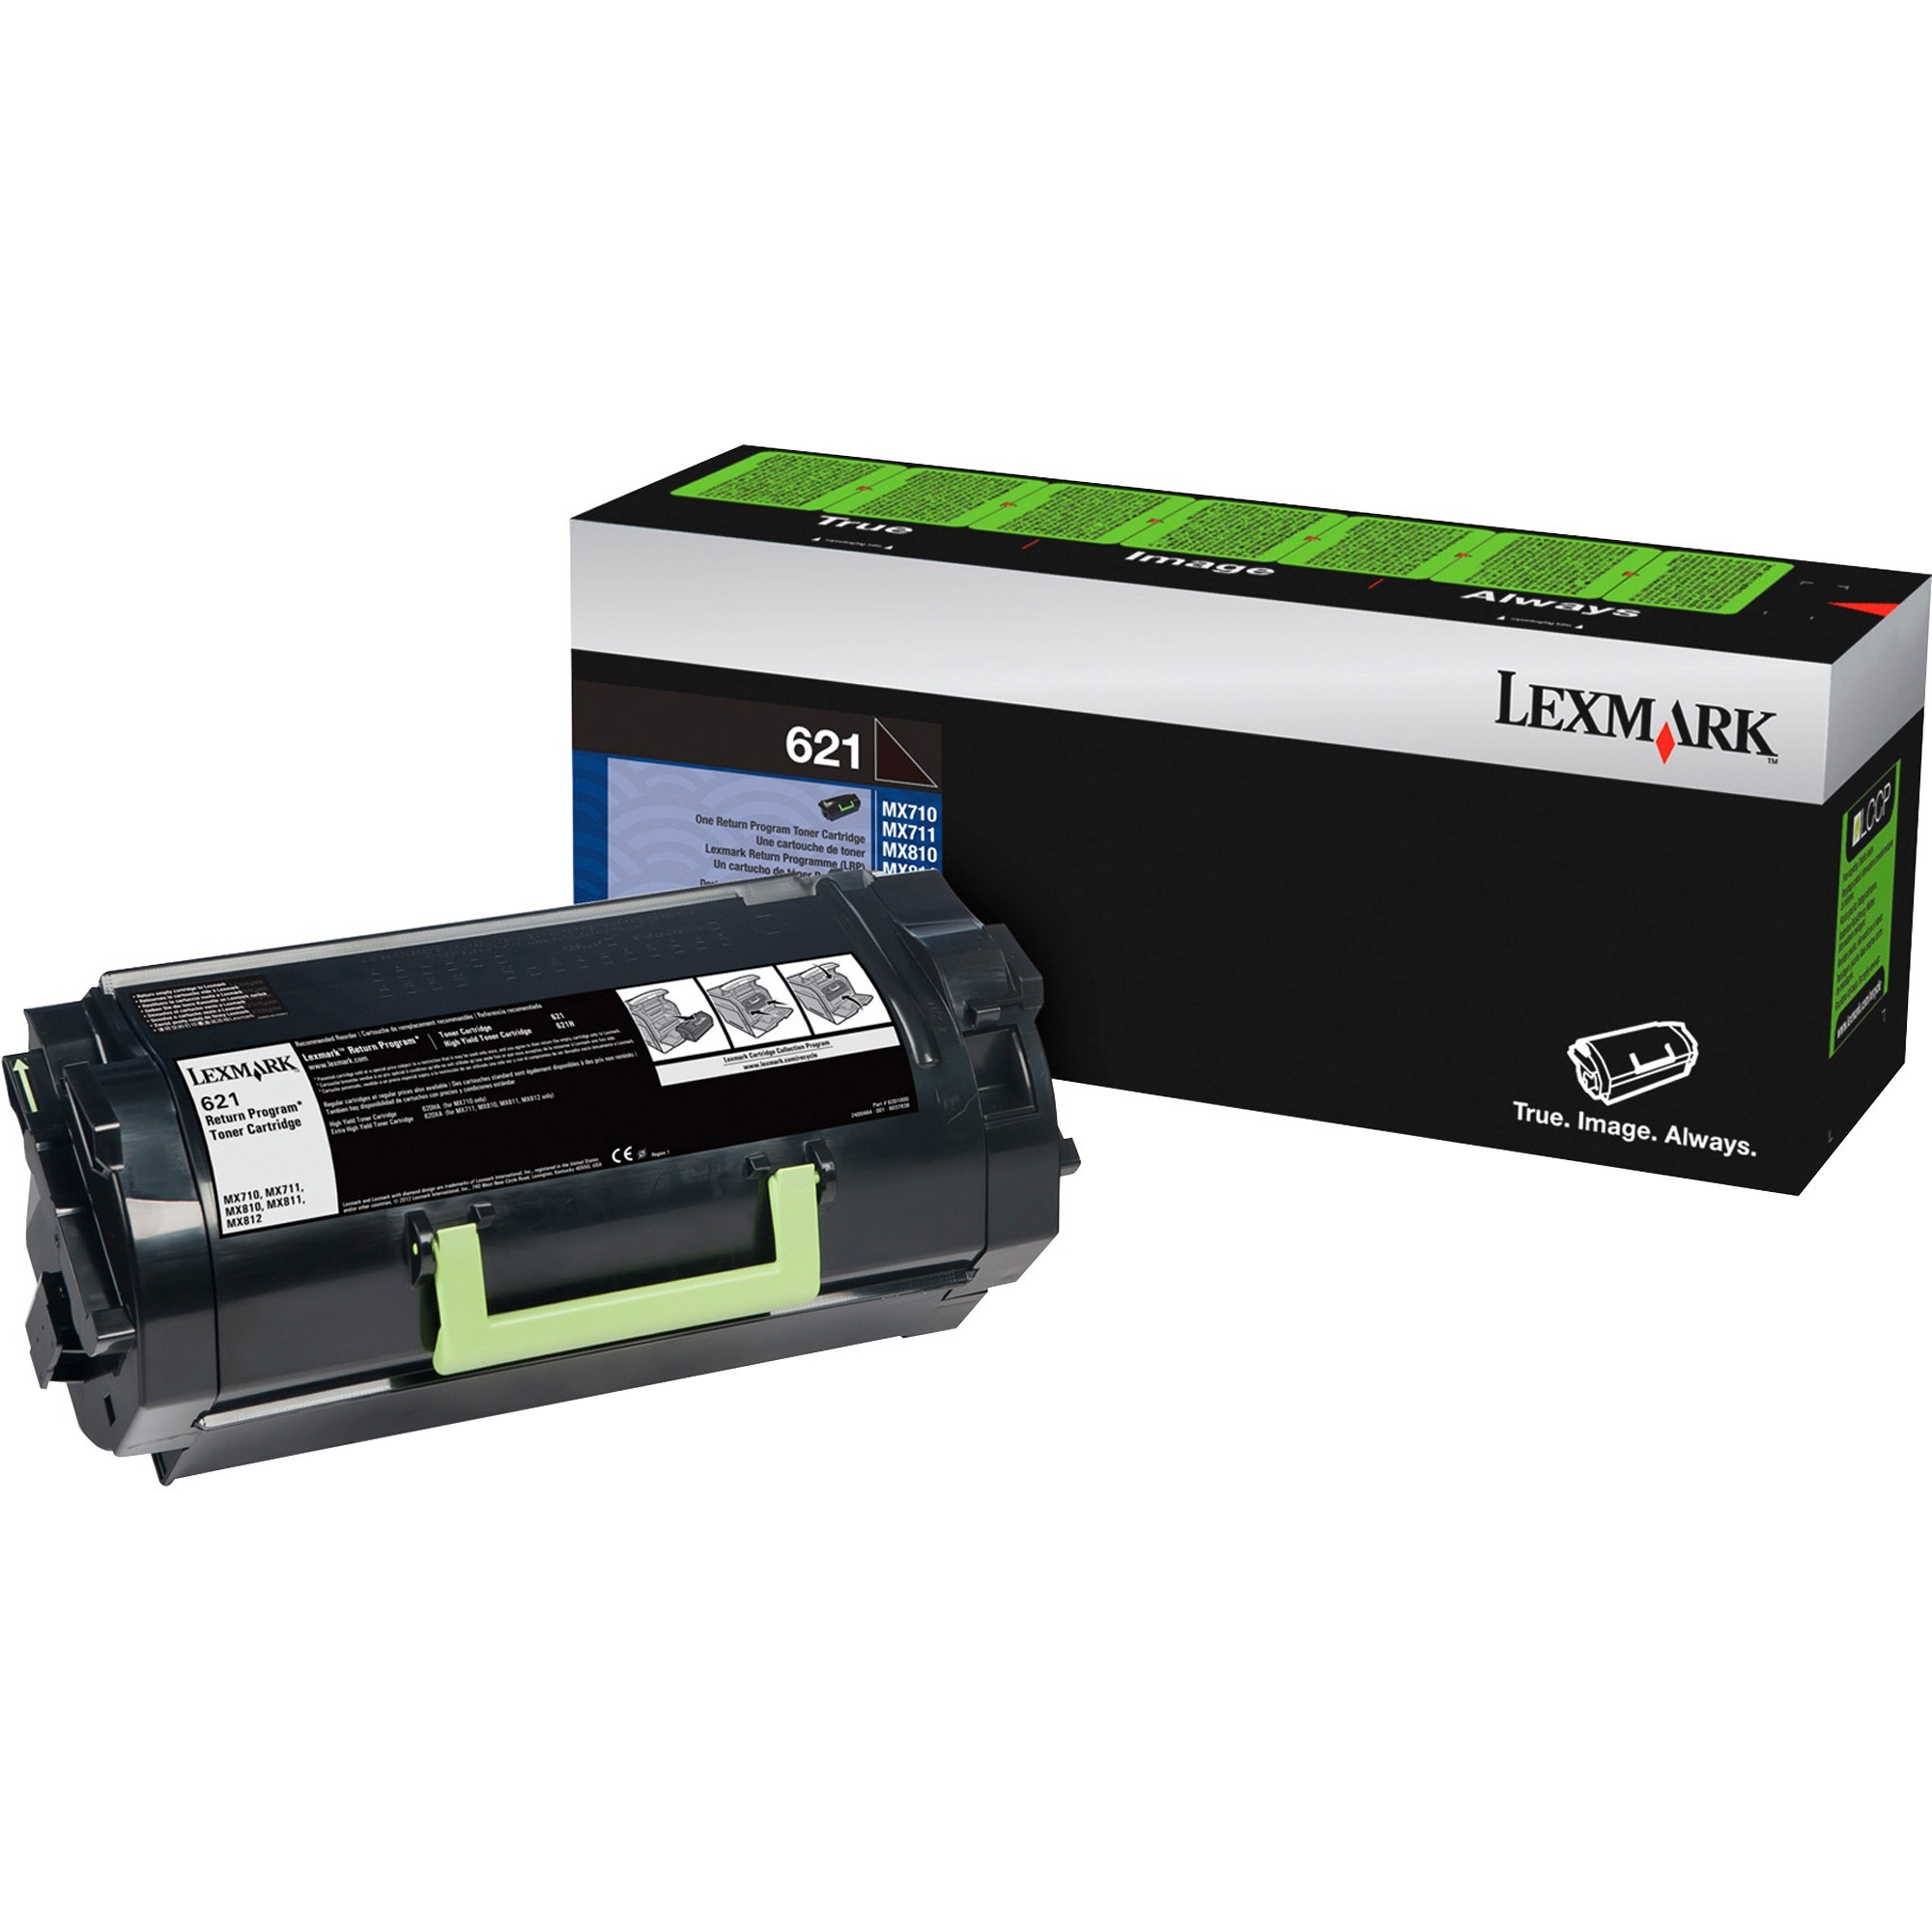 Lexmark MX710 MFP PCL-XL Driver Download